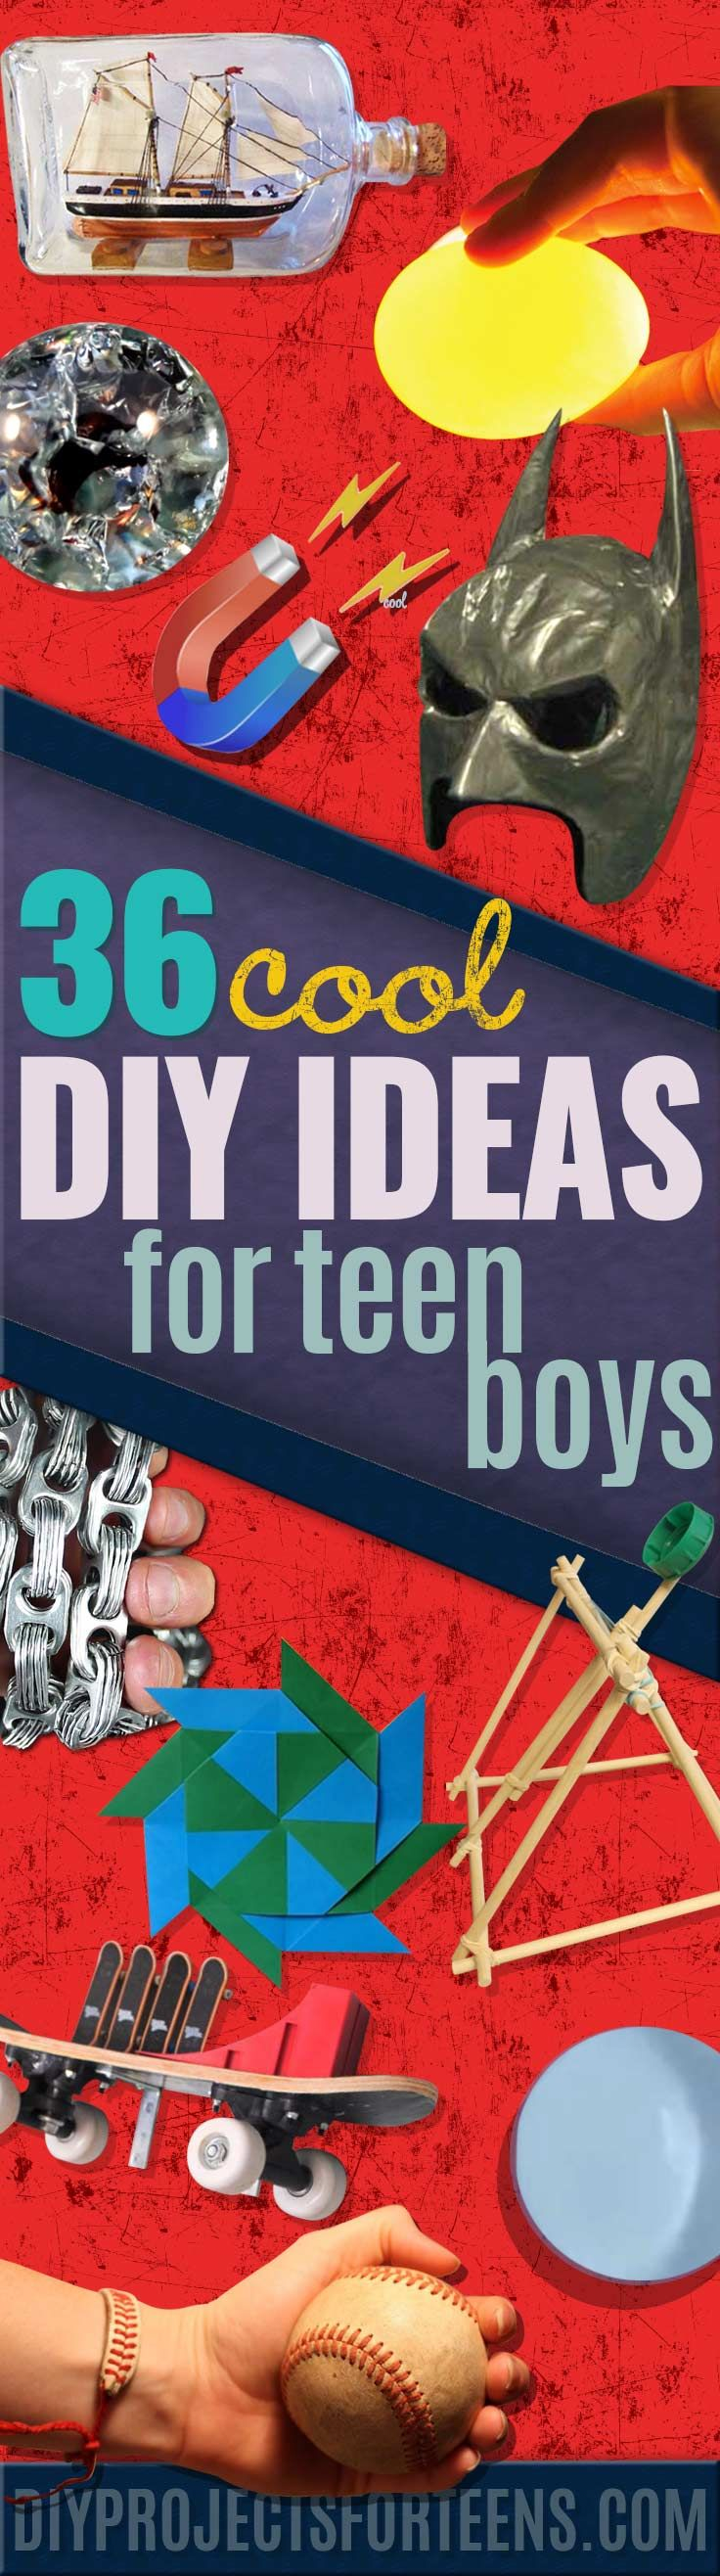 Cool Crafts for Teens Boys -Creative, Awesome Teen DIY Projects and Fun Creative Crafts for Boys (and even Girls) Tweens Can Make Fun Stuff At Home